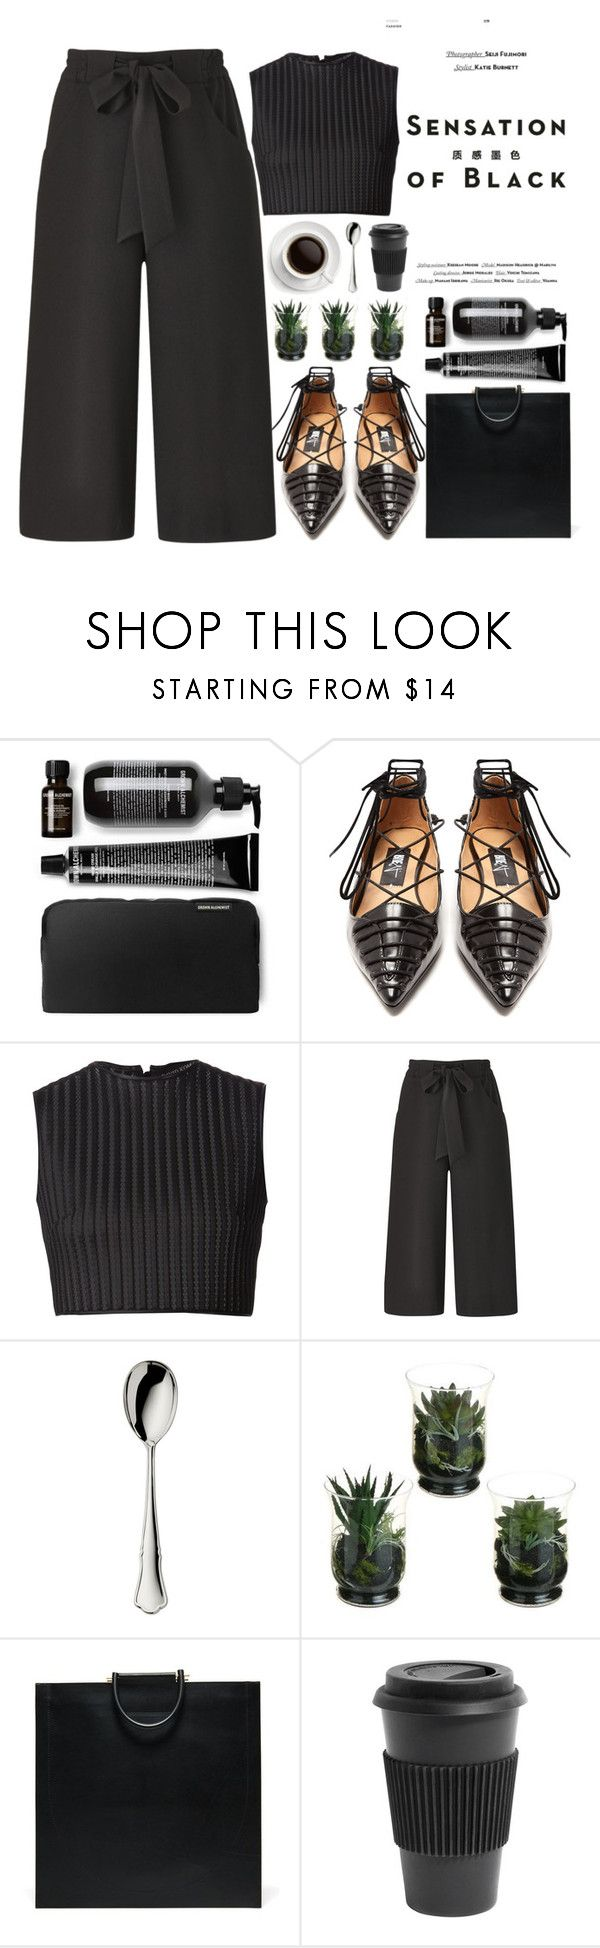 """""""SENSATION OF BLACK"""" by evangeline-lily on Polyvore featuring Vision, Rue St., David Koma, Robbe & Berking, Homage, allblackoutfit and fallwinter2018"""